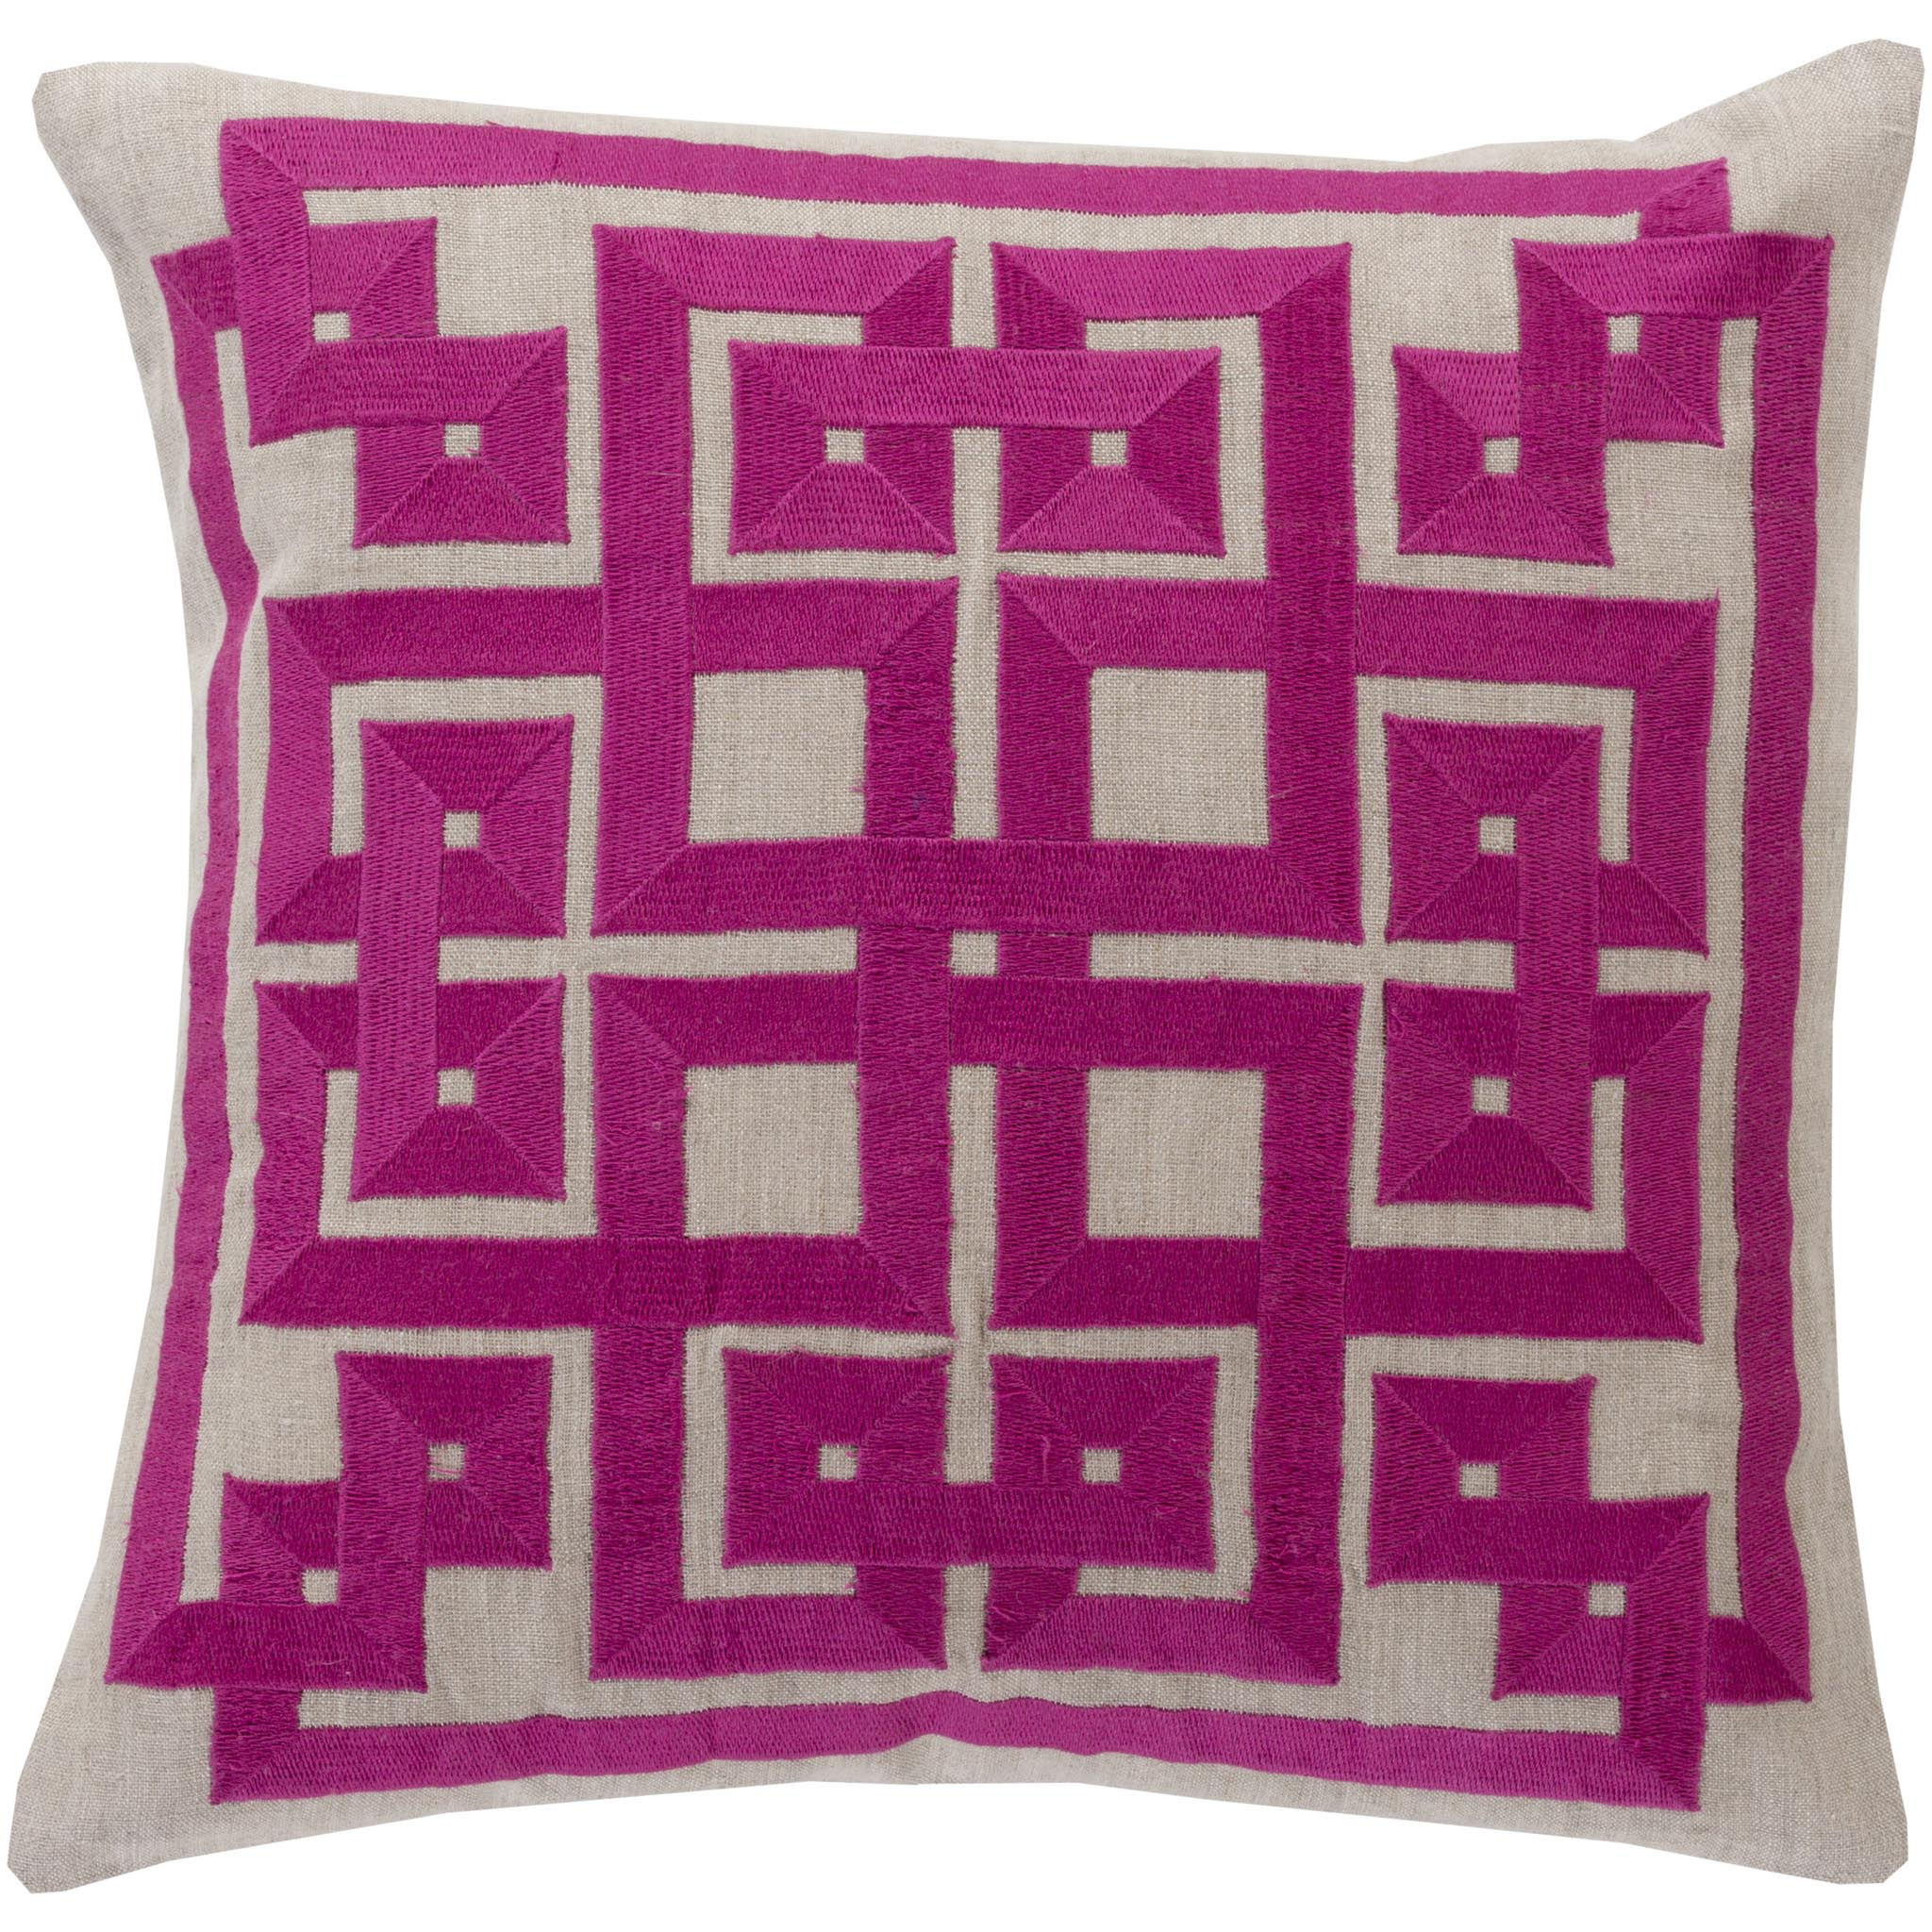 Beth Lacefield Geometric Pillow